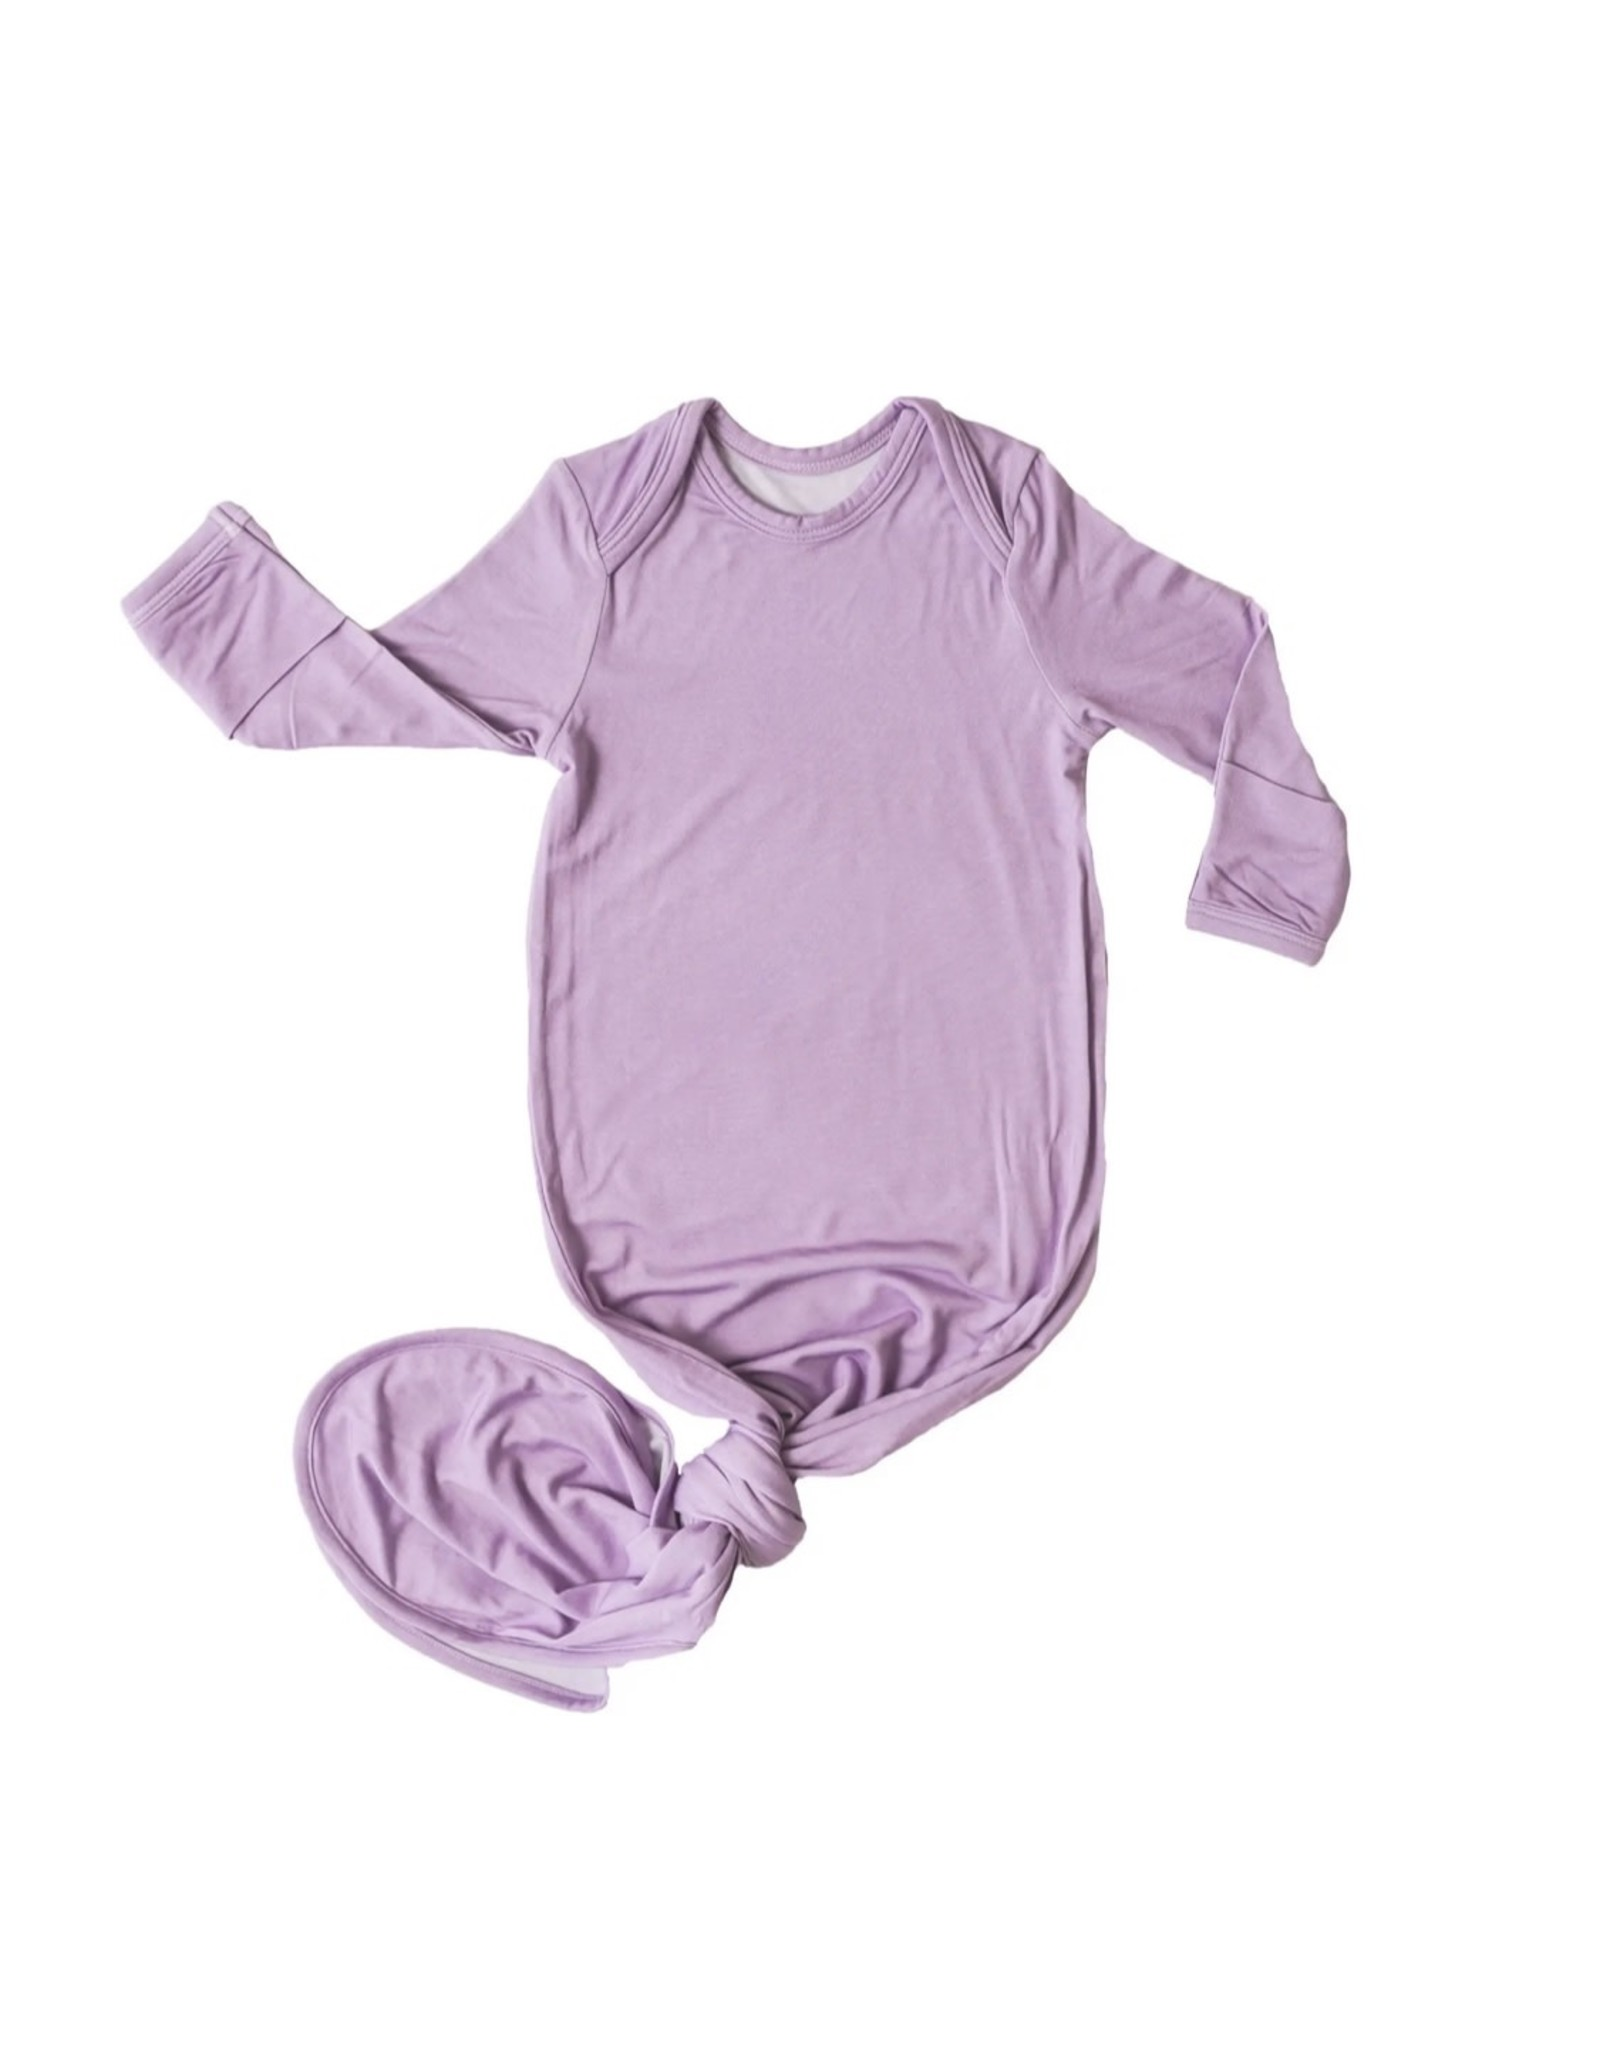 Little Sleepies Little Sleepies- Wisteria Bamboo Viscose Knotted Gown